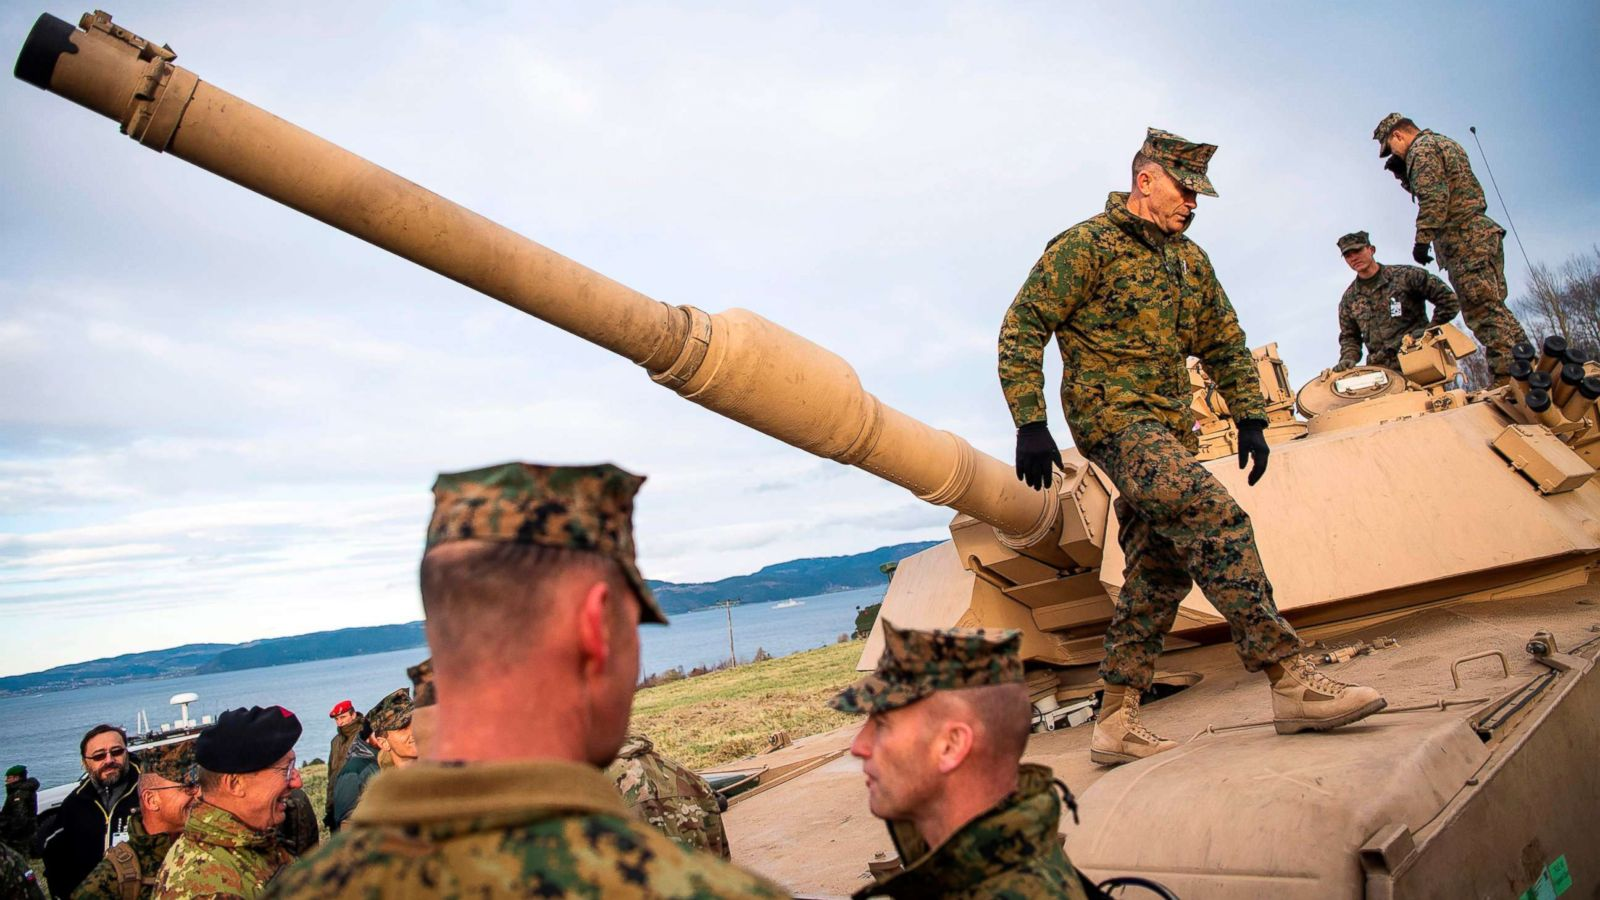 Russias participation in NATO exercises Trident Juncture 2018 is questionable